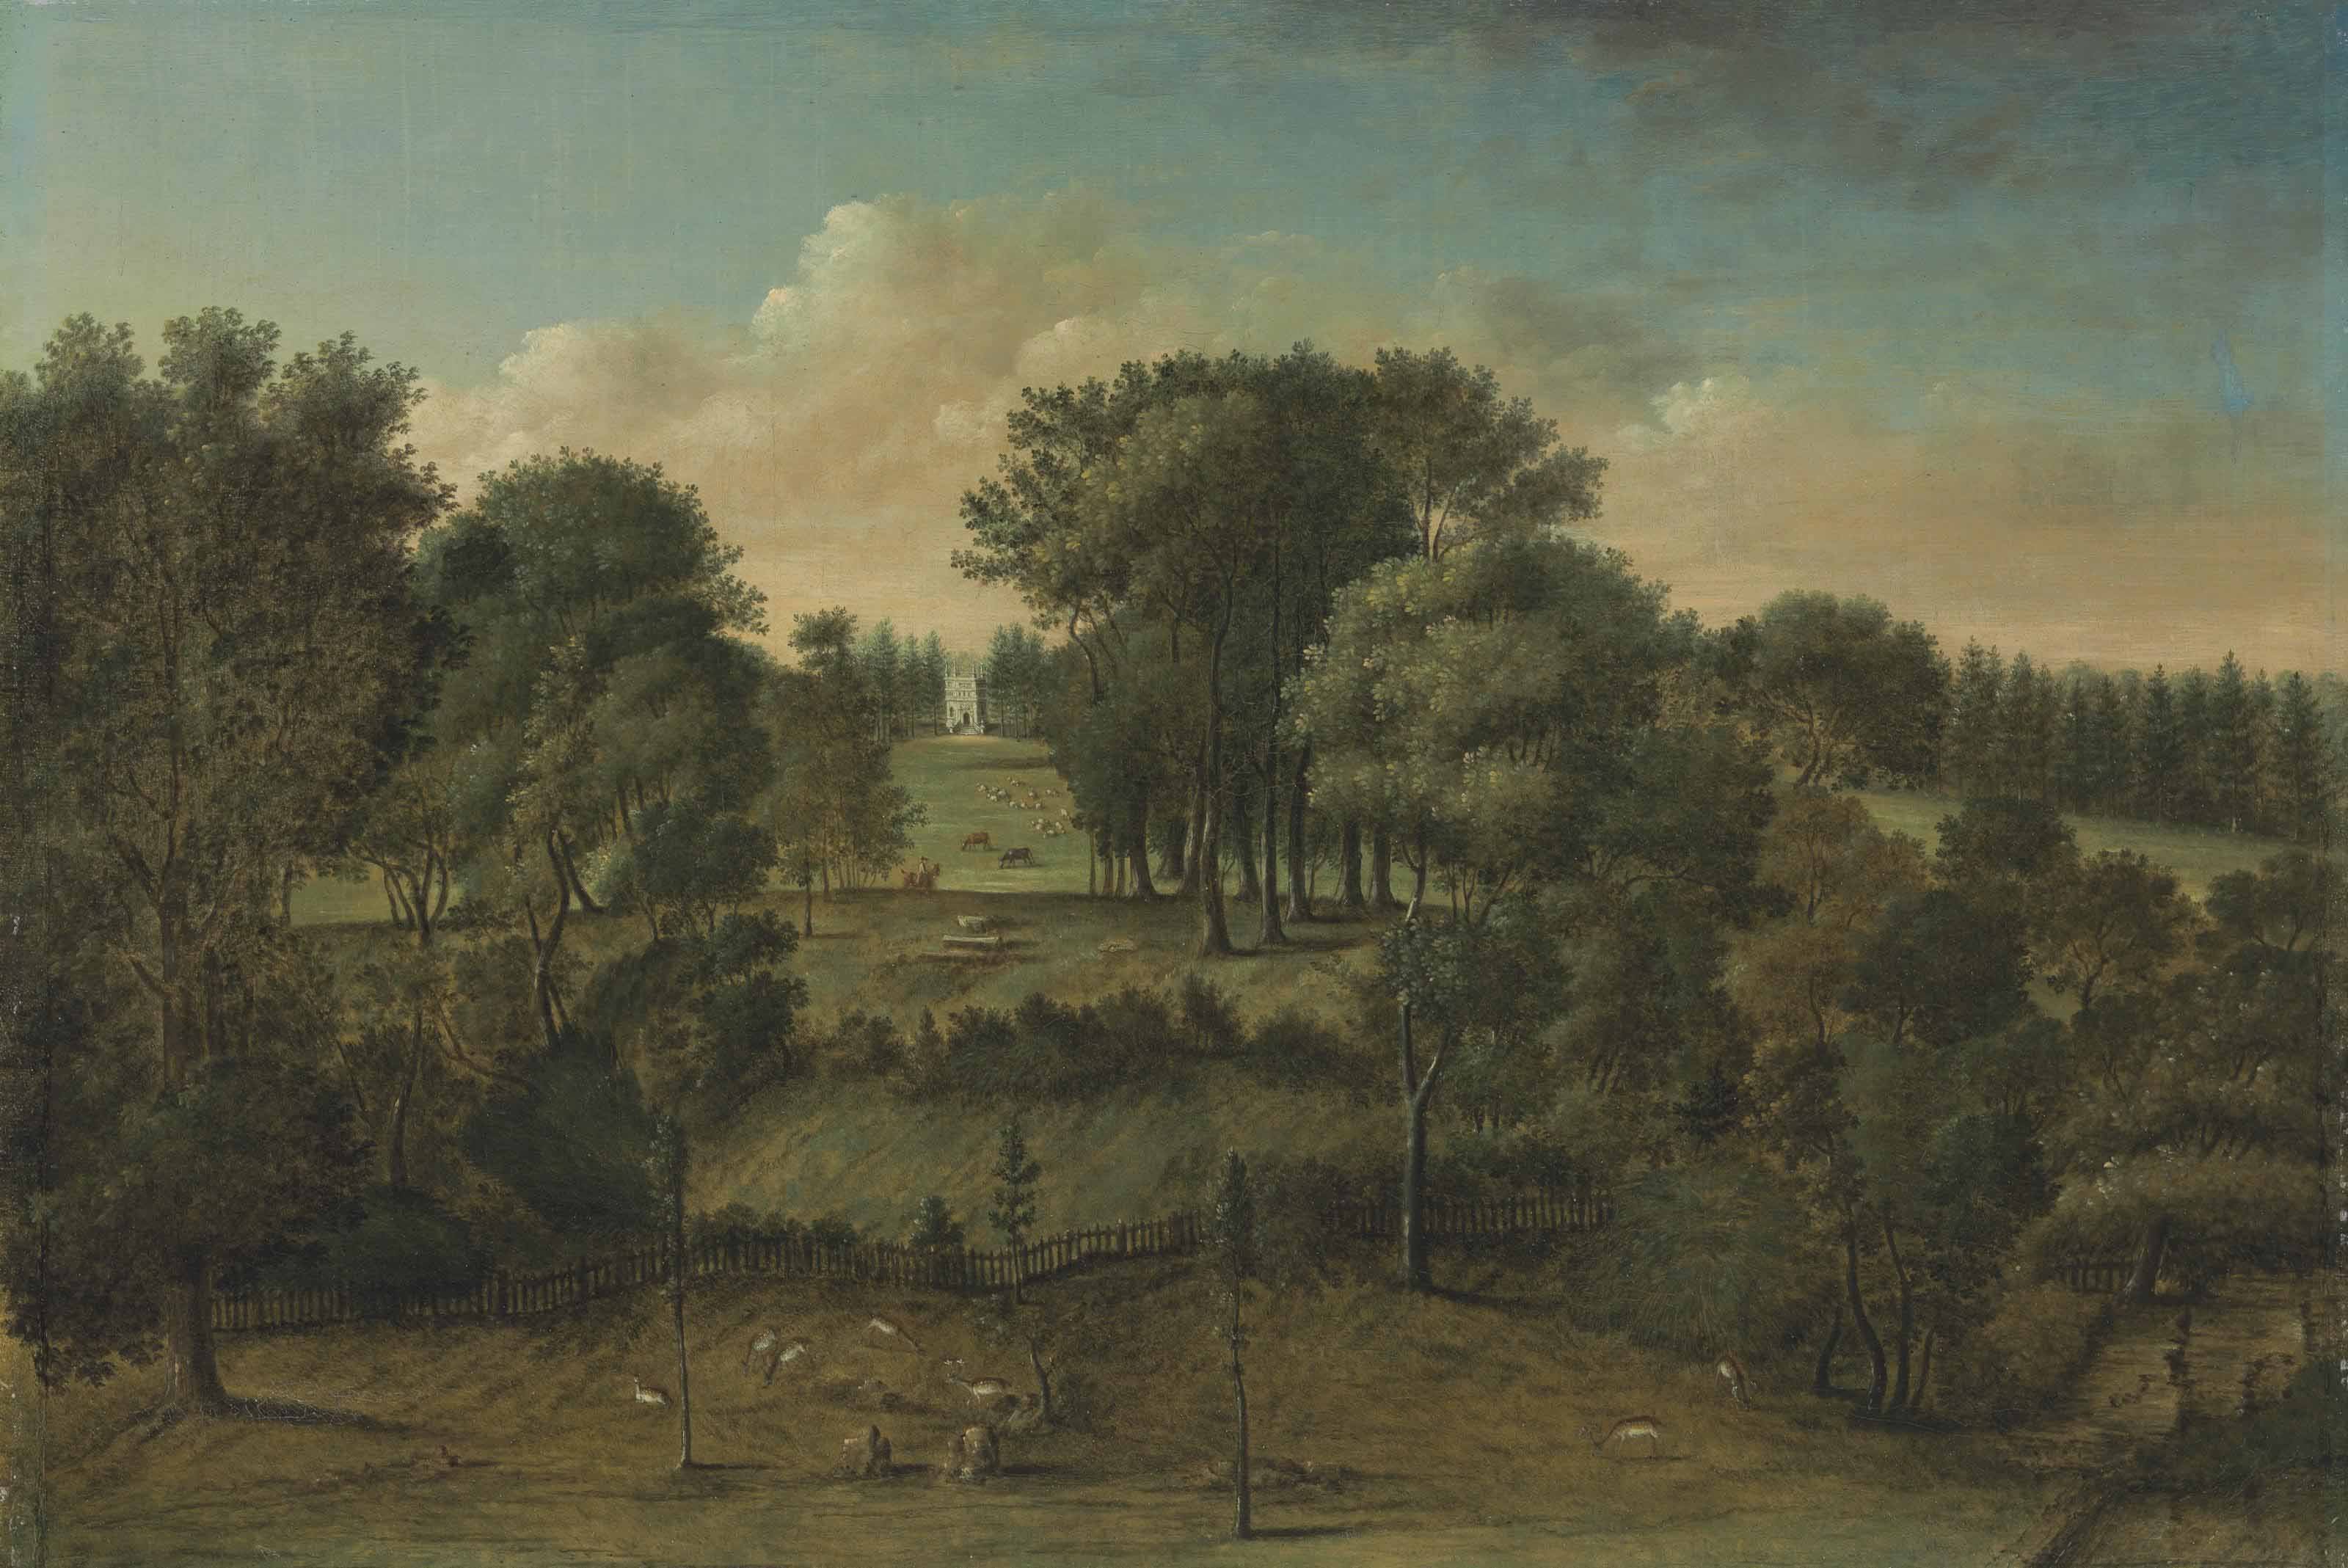 Studley Royal, Yorkshire: An extensive view of the park with the Octagon Tower in the distance